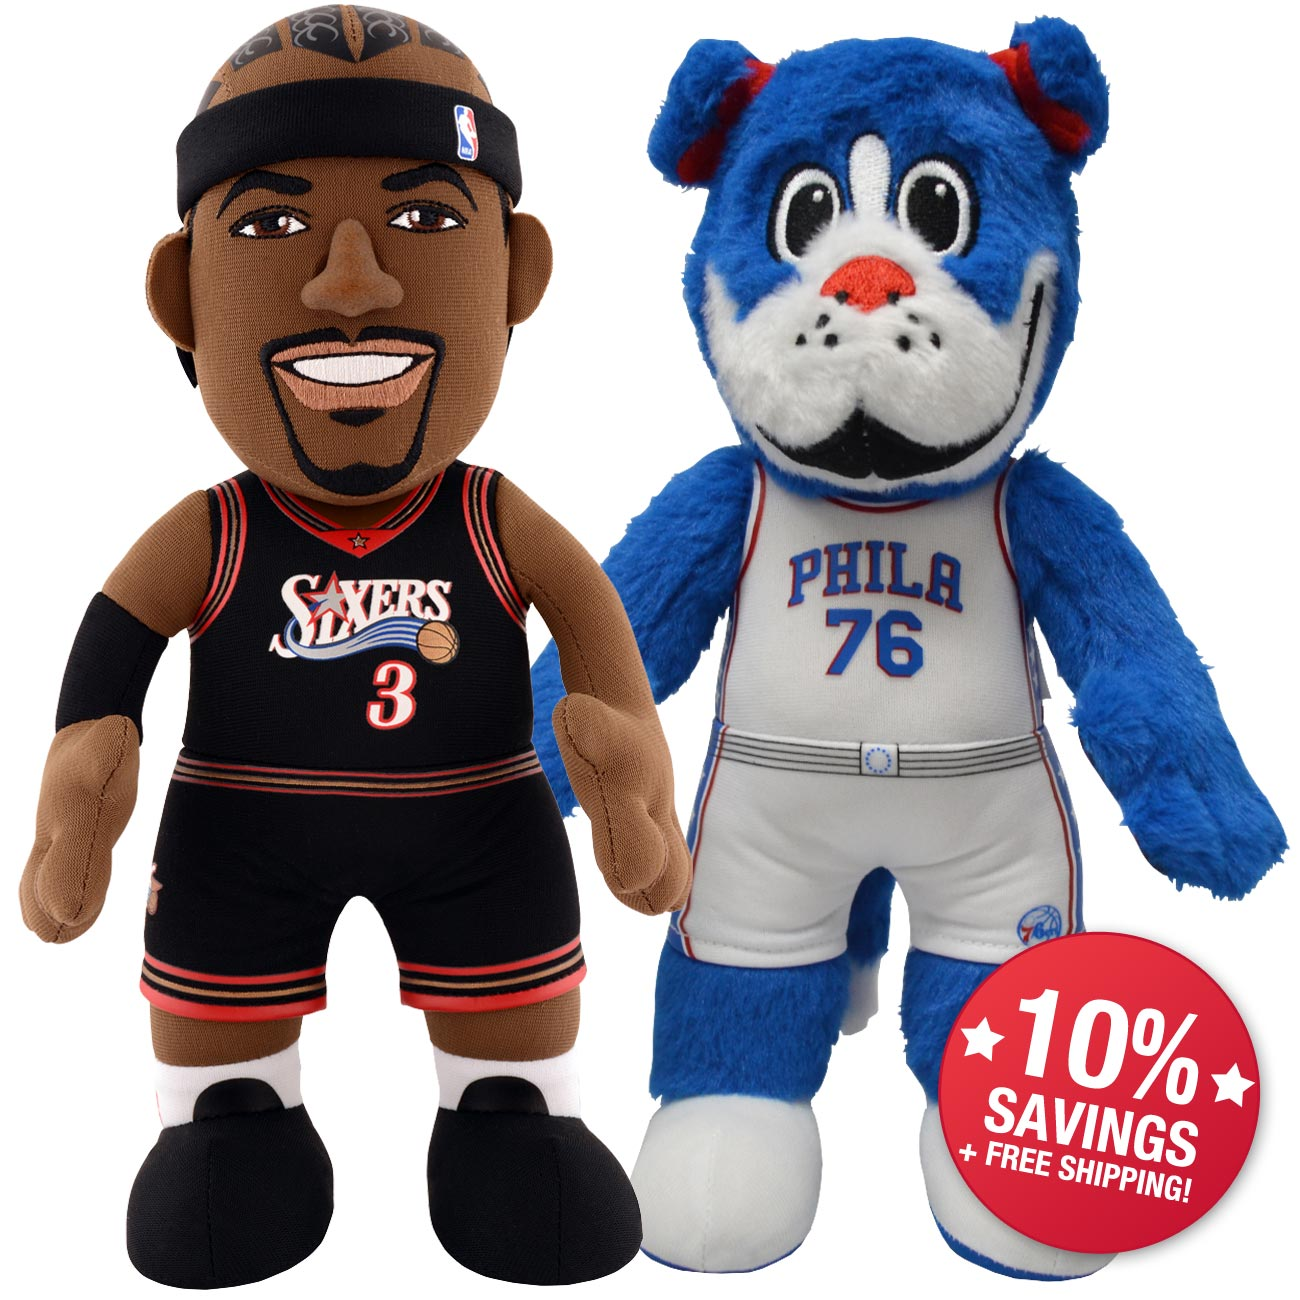 Philadelphia 76ers Dynamic Duo Simmons And Iverson 10 Savings Bleacher Creatures